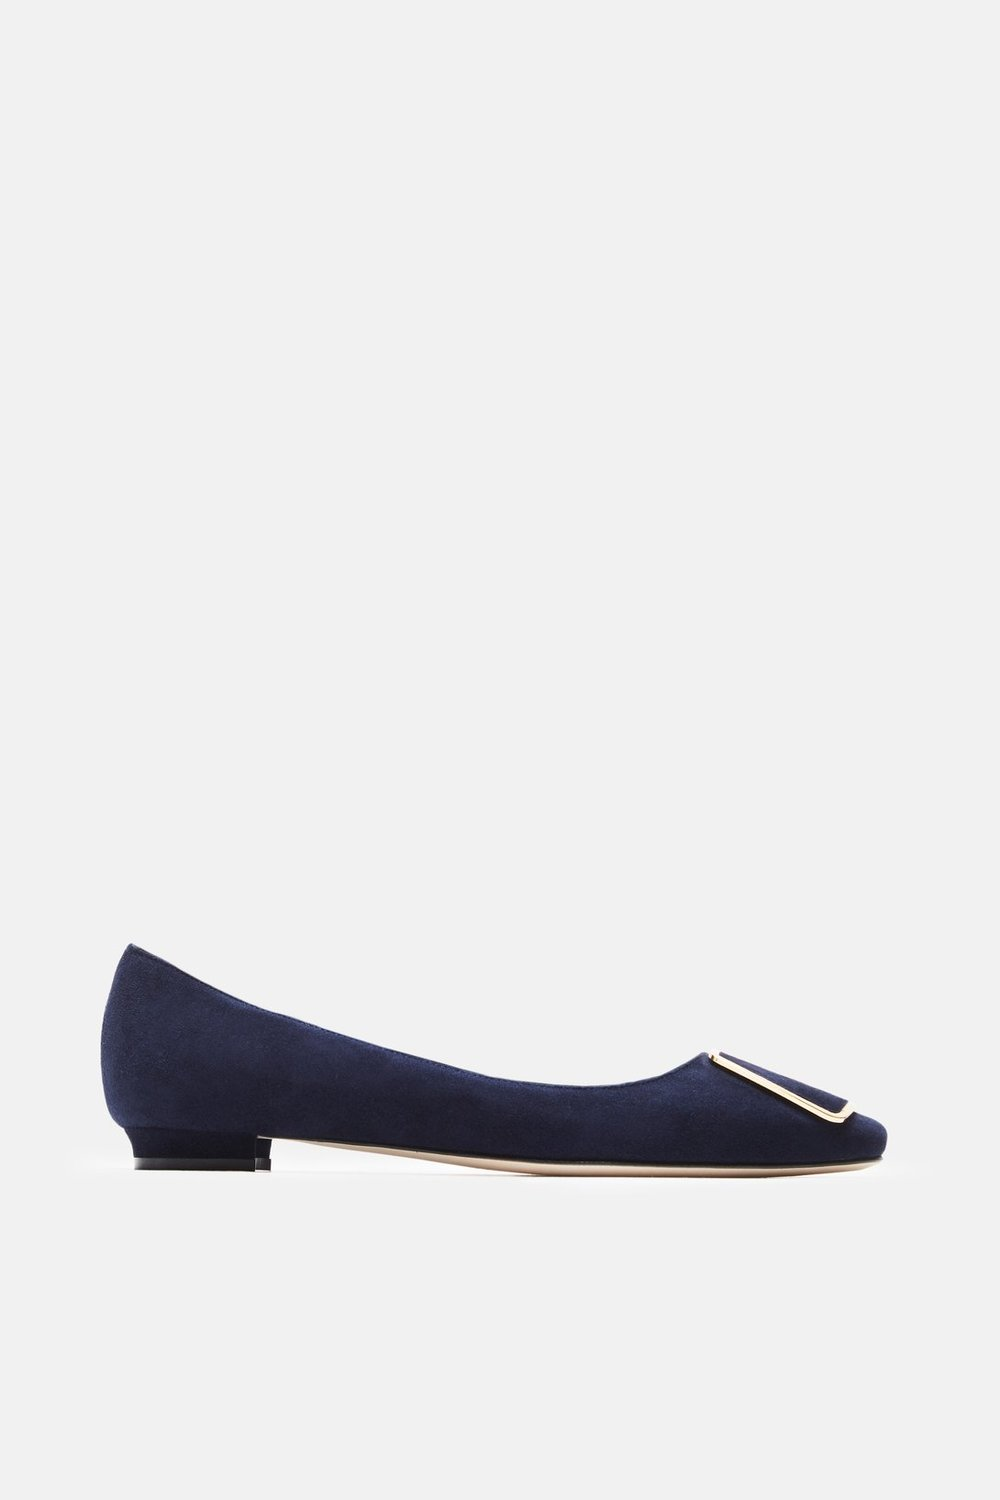 Manolo Blahnik Flats, Was $735 - Now $221